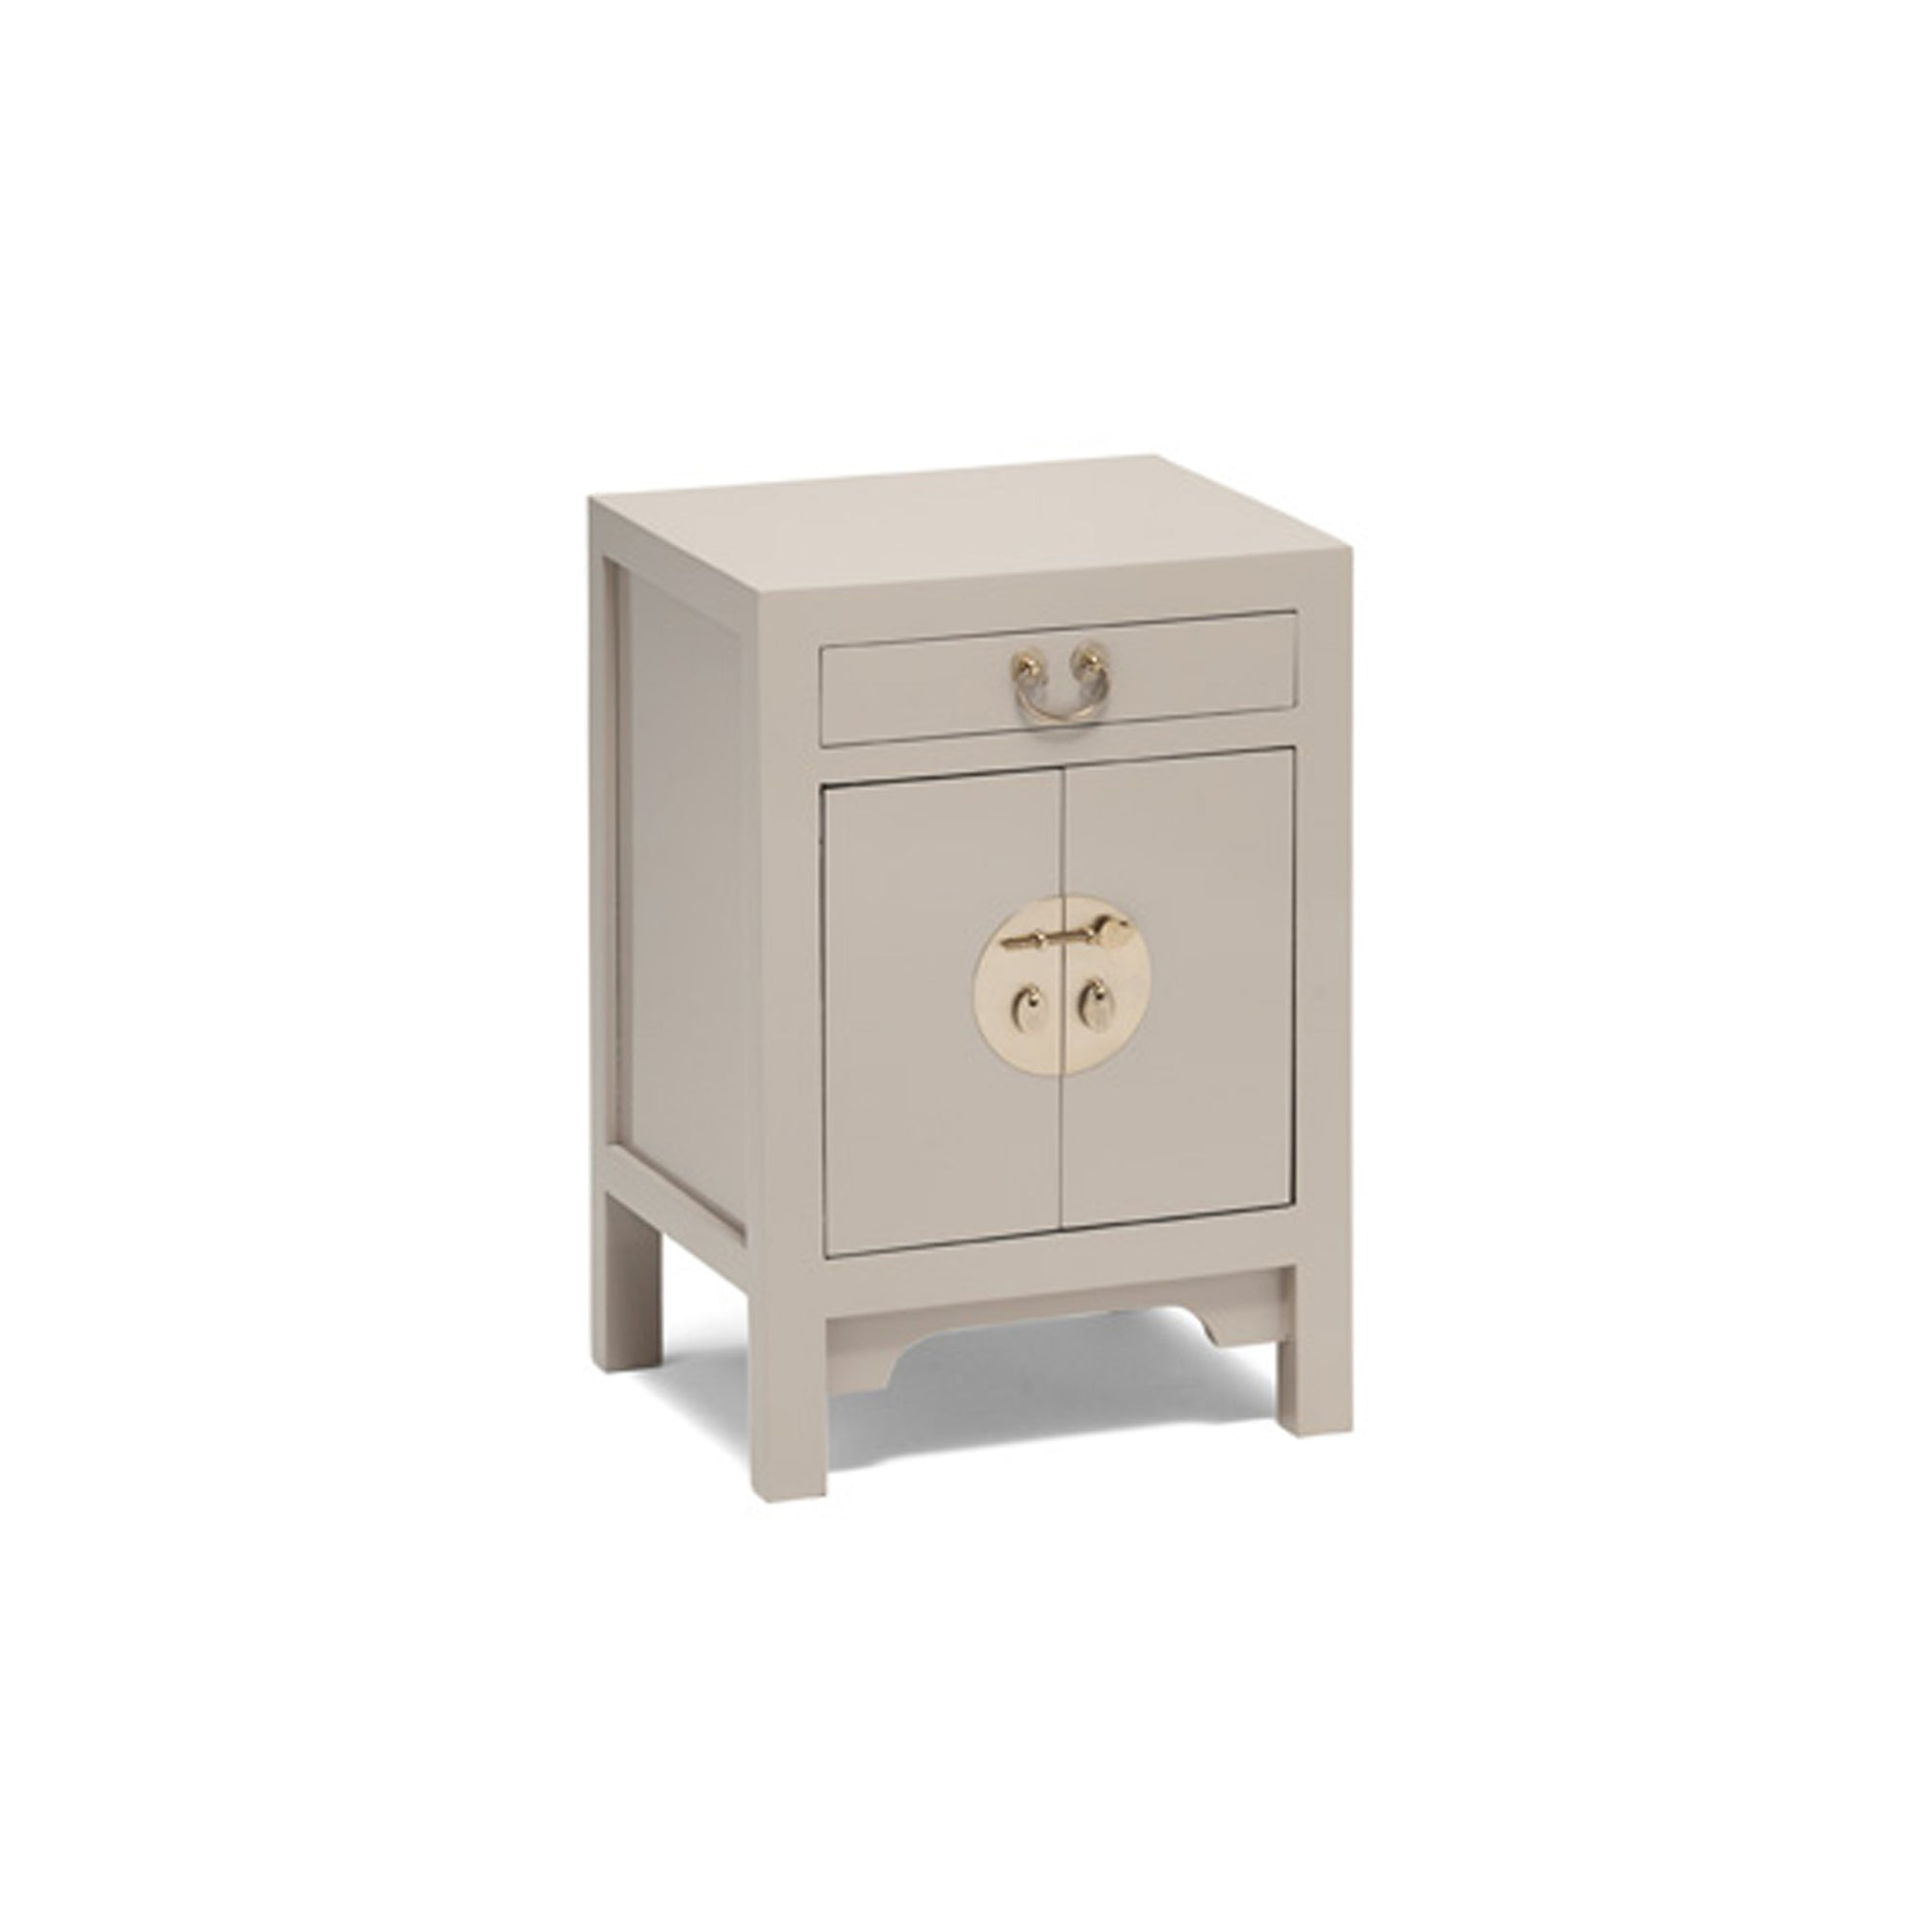 The Nine Schools Qing Oyster Grey Small Cabinet by Roseland Furniture